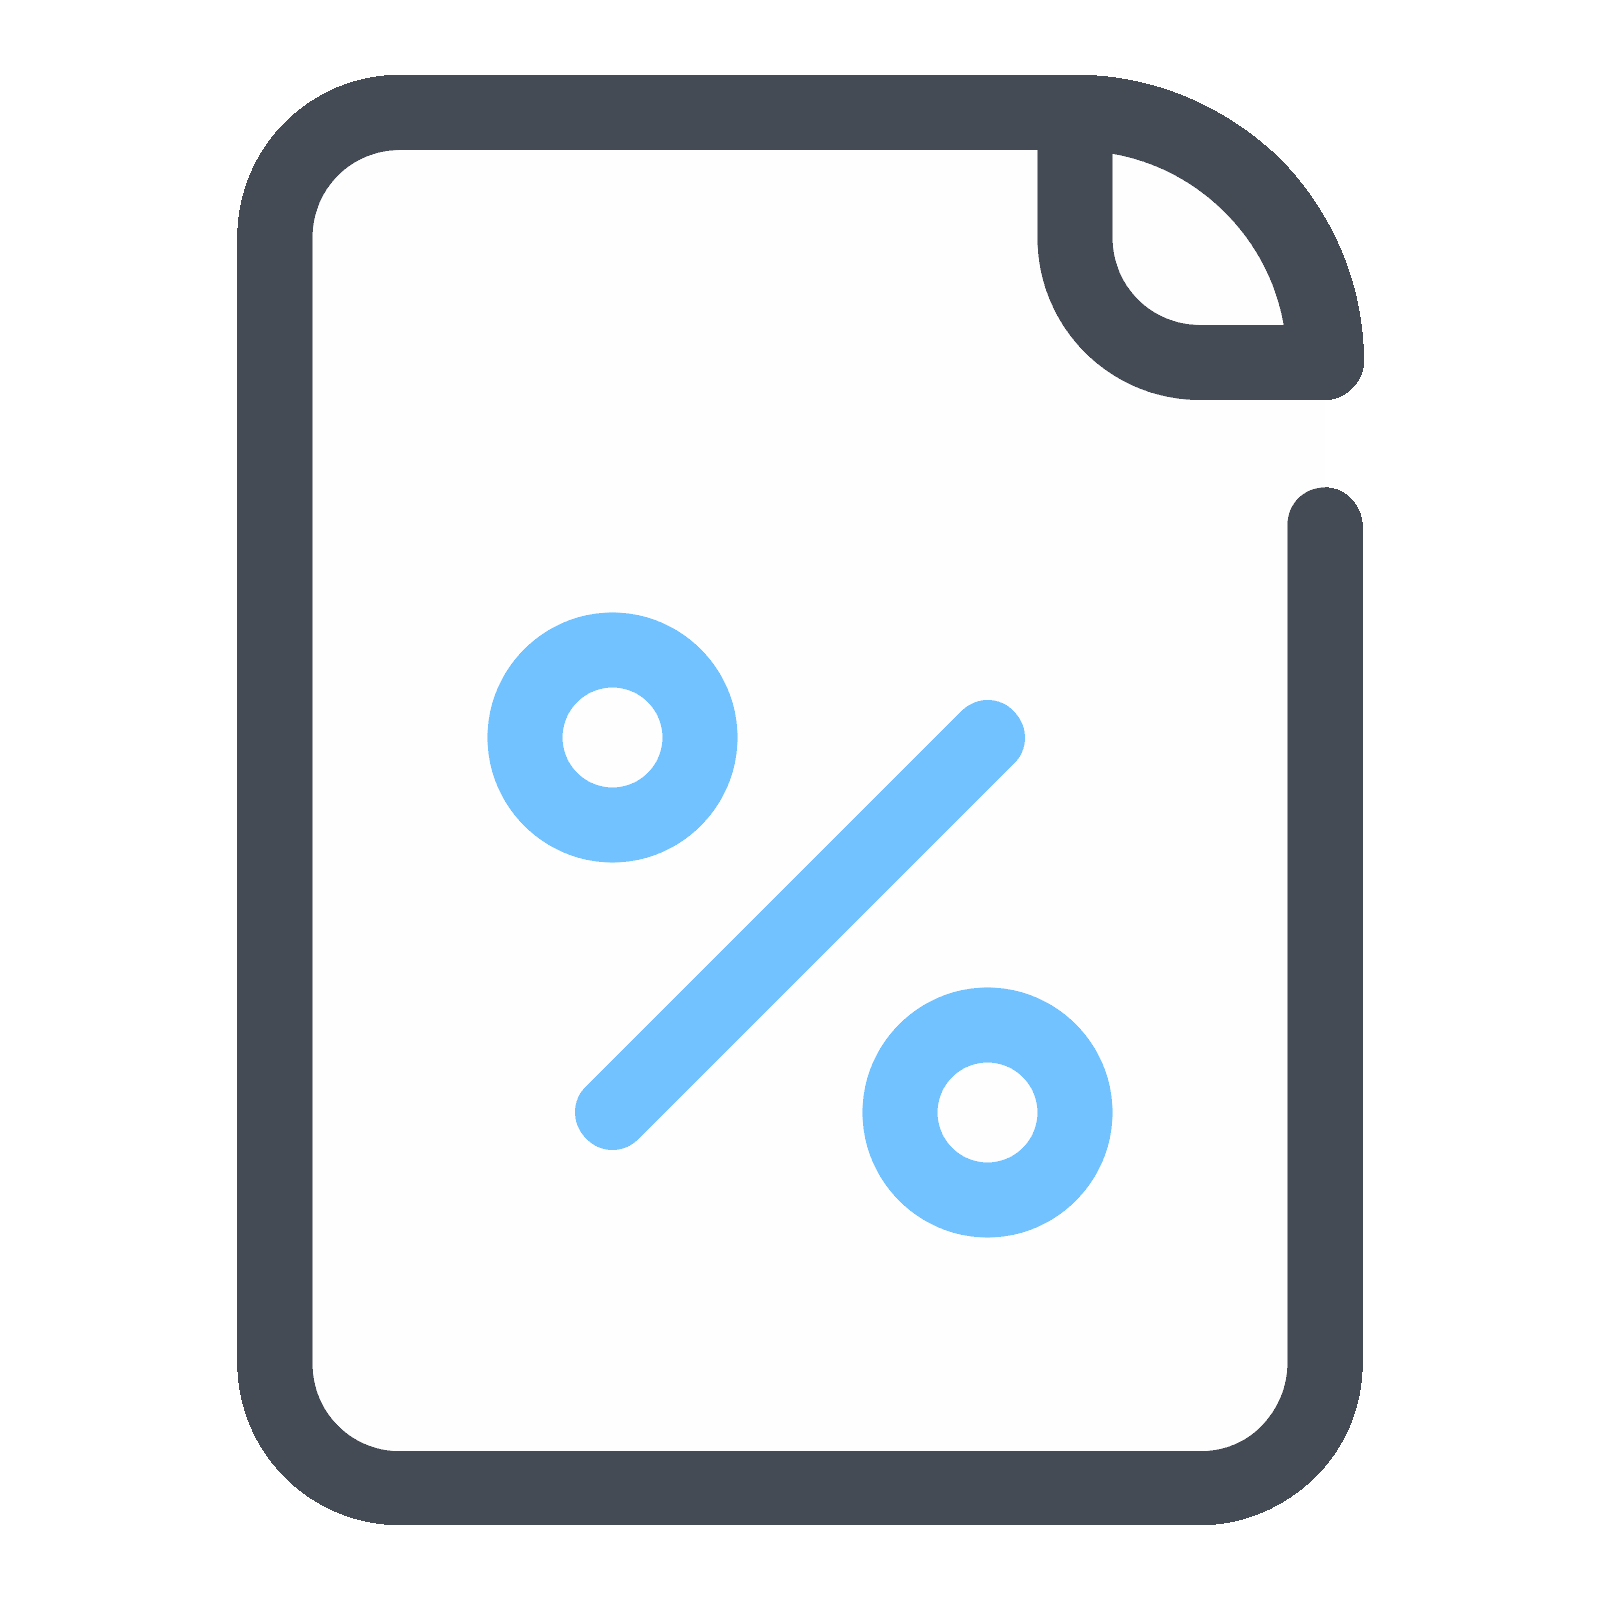 Statistics vector. Report icon free download